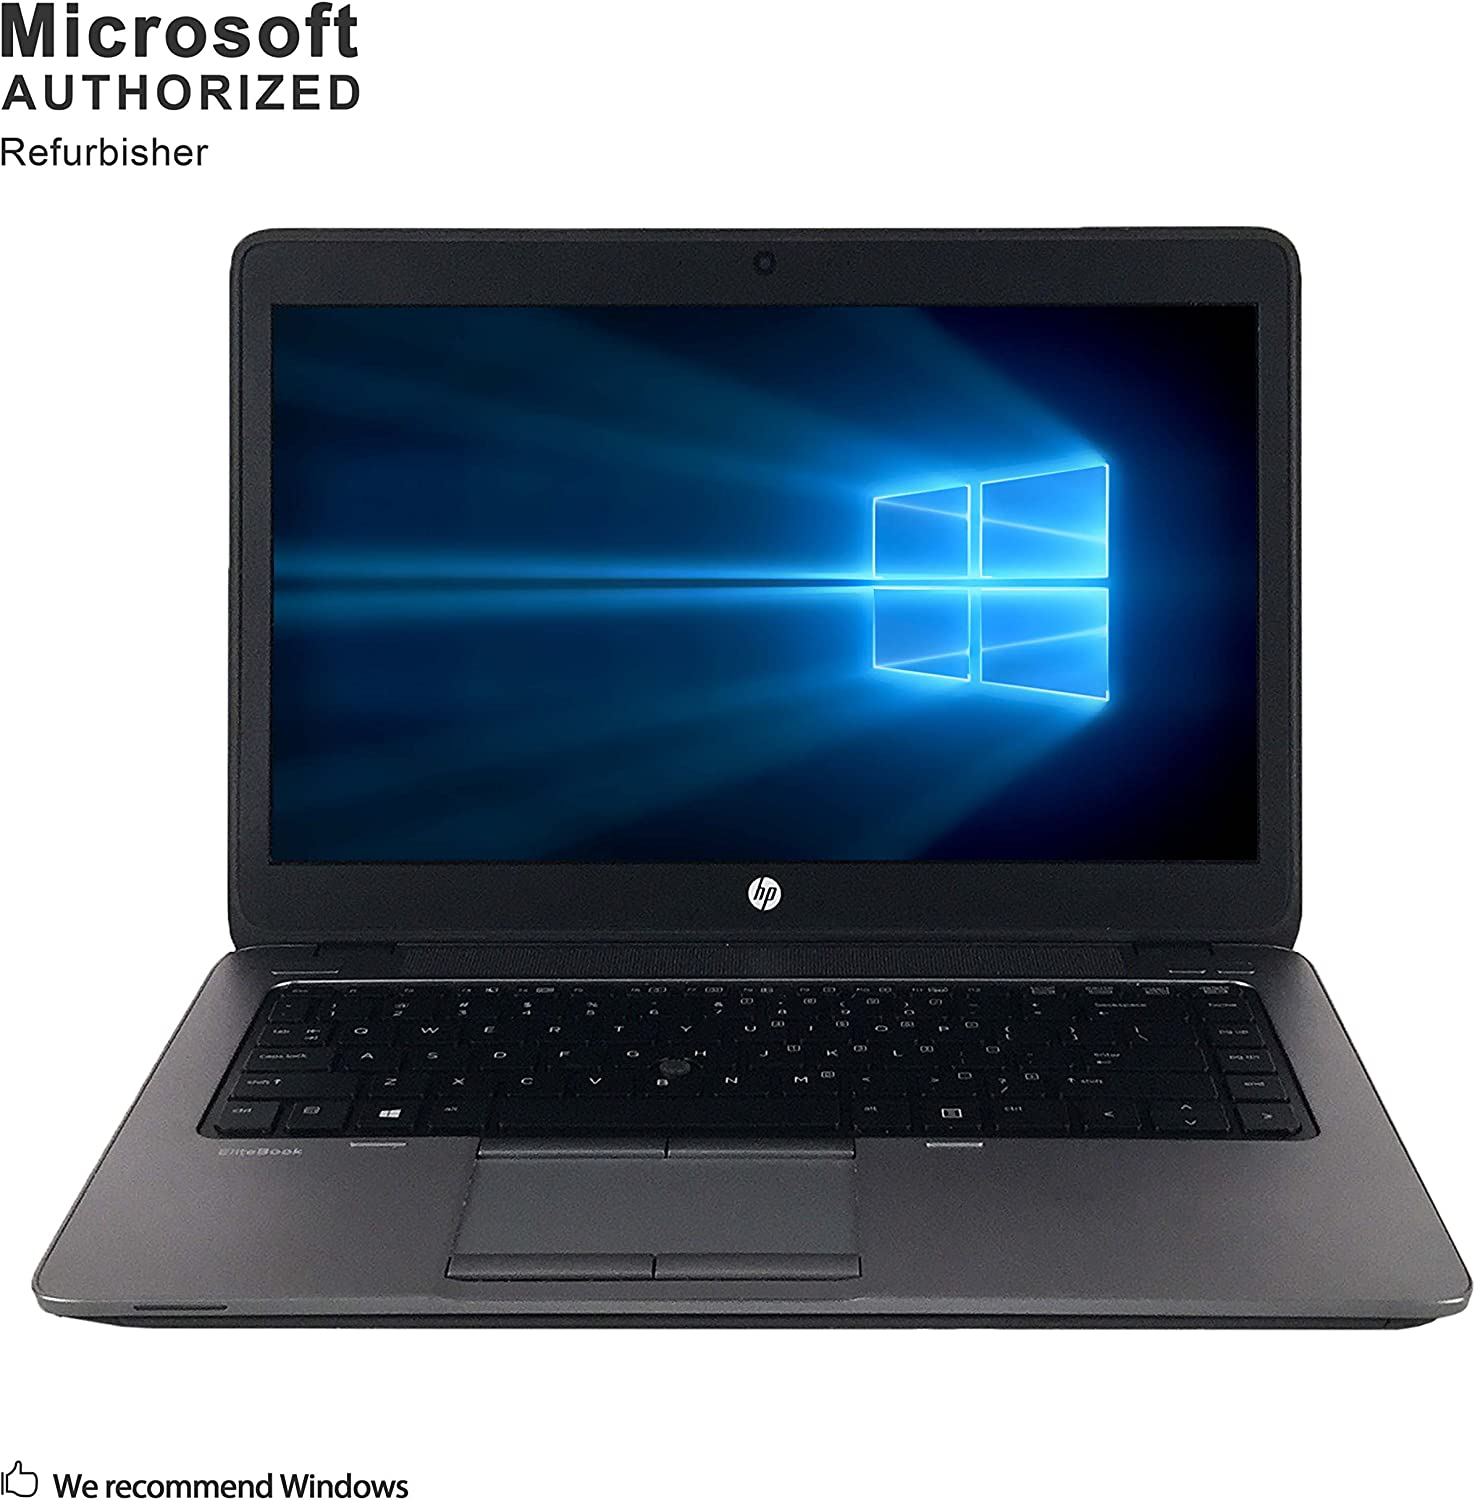 HP ProBook 640 G1 14 Inch Business Laptop PC, Intel Core i5-4200M up to 3.1GHz, 8G DDR3, 512G SSD, WiFi, DVD, VGA, DP, Windows 10 64 Bit Multi-Language Support English/French/Spanish(Renewed)